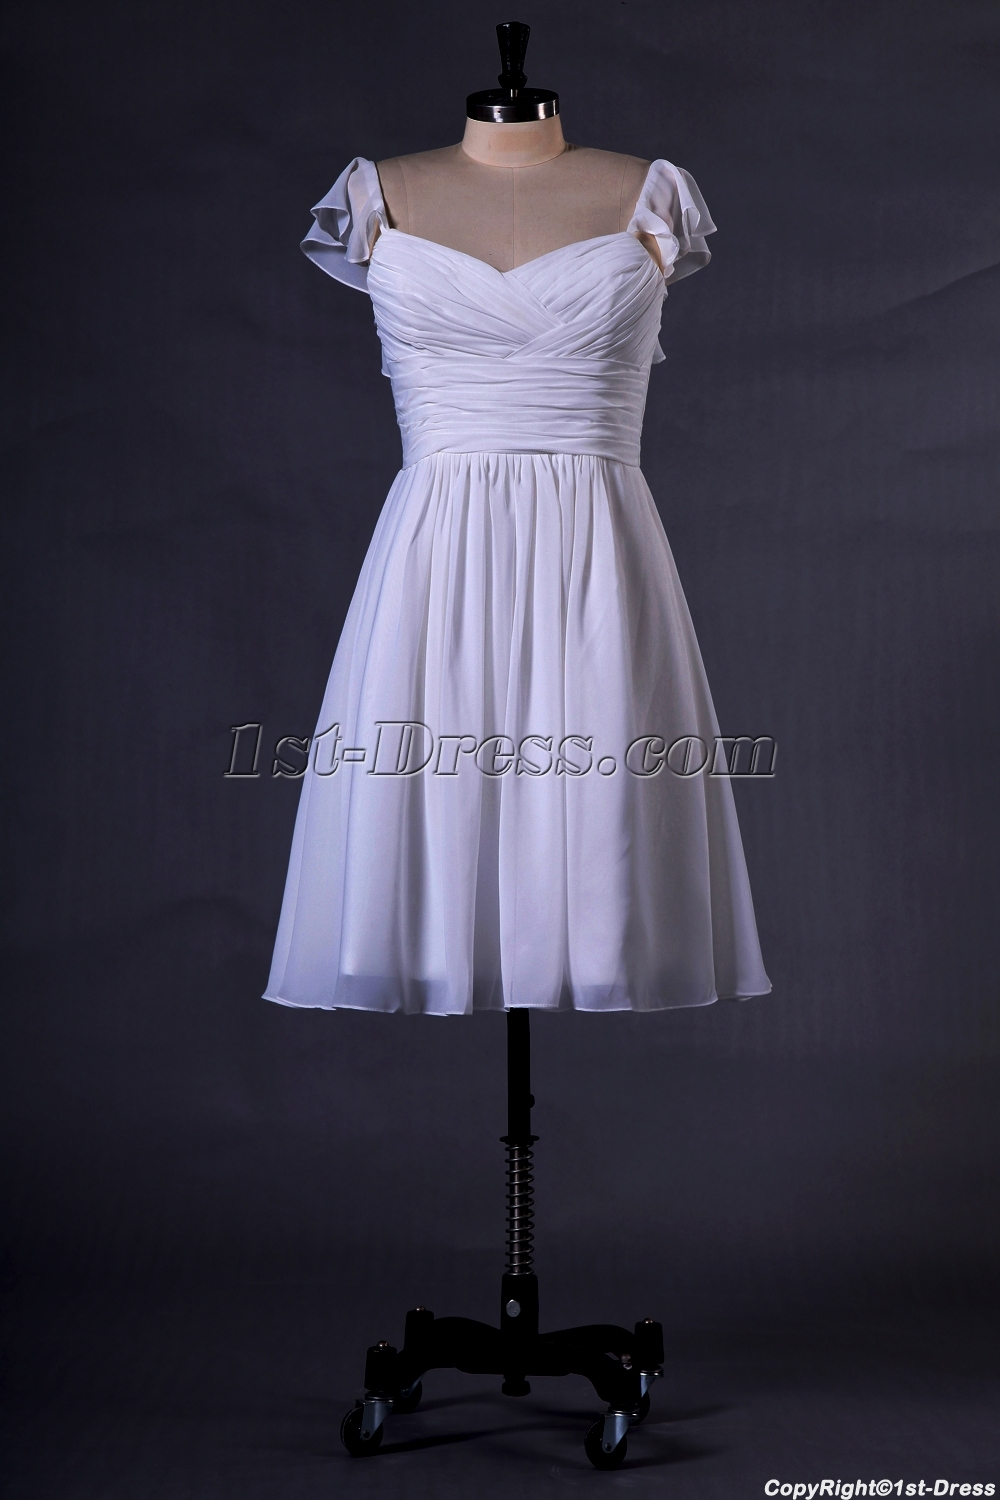 images/201307/big/Ivory-Chiffon-Homecoming-Dress-with-Ruffle-2397-b-1-1374594896.jpg